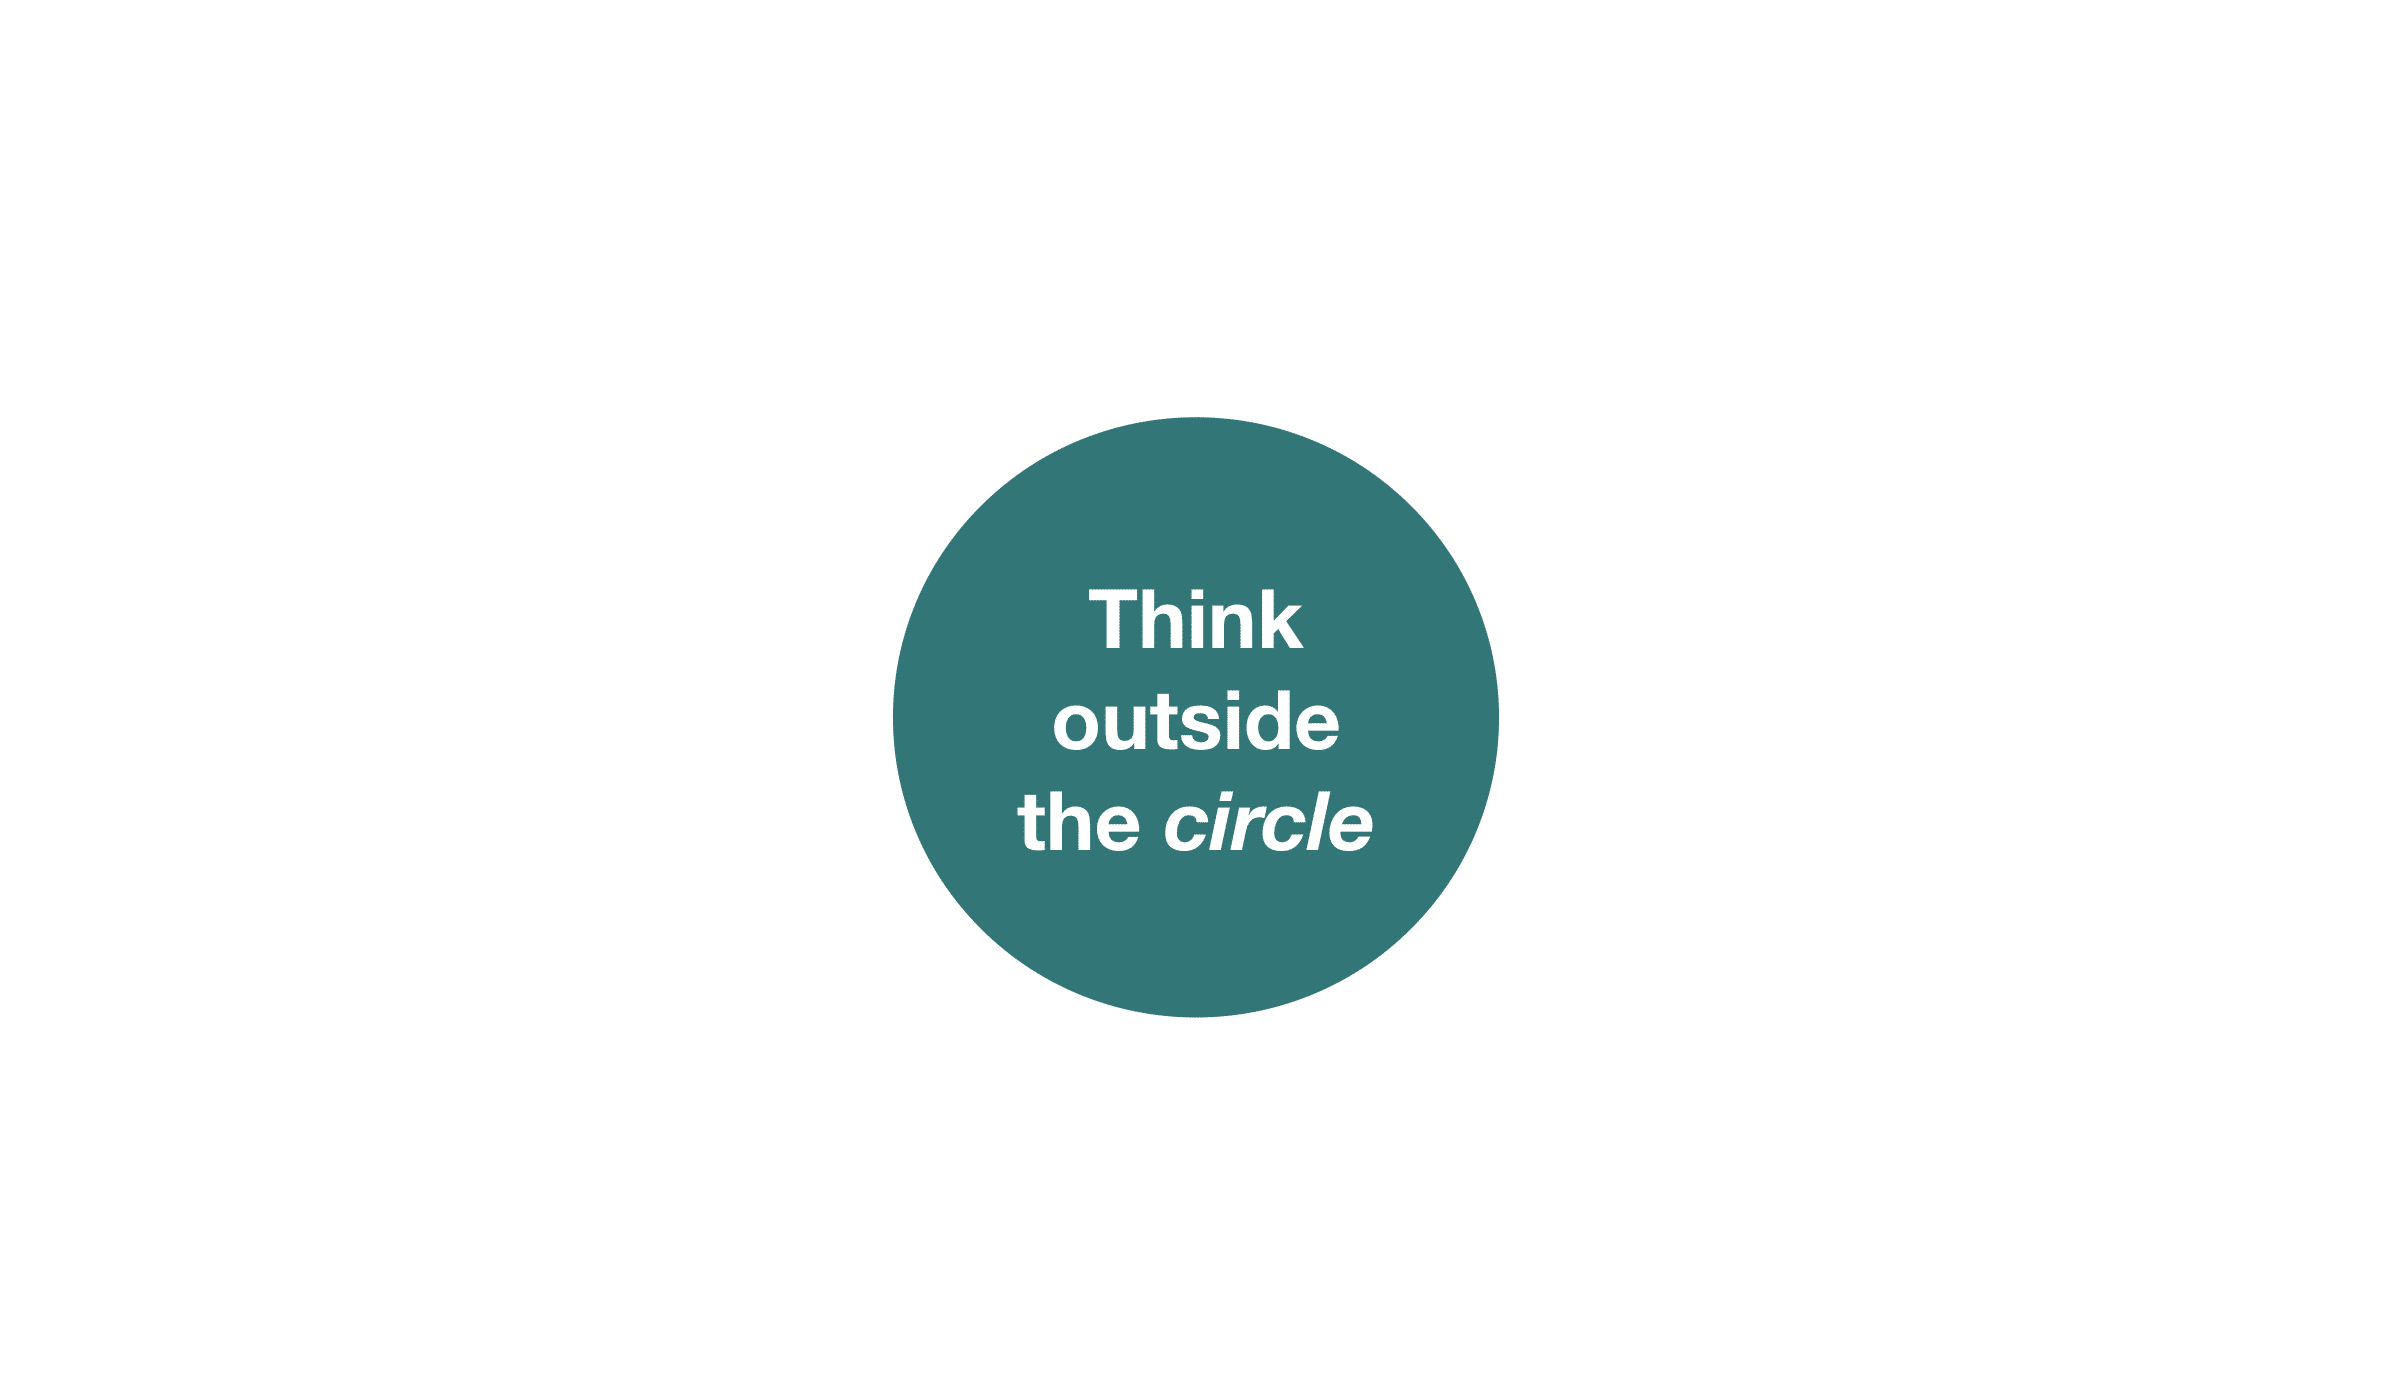 Think outside the circle